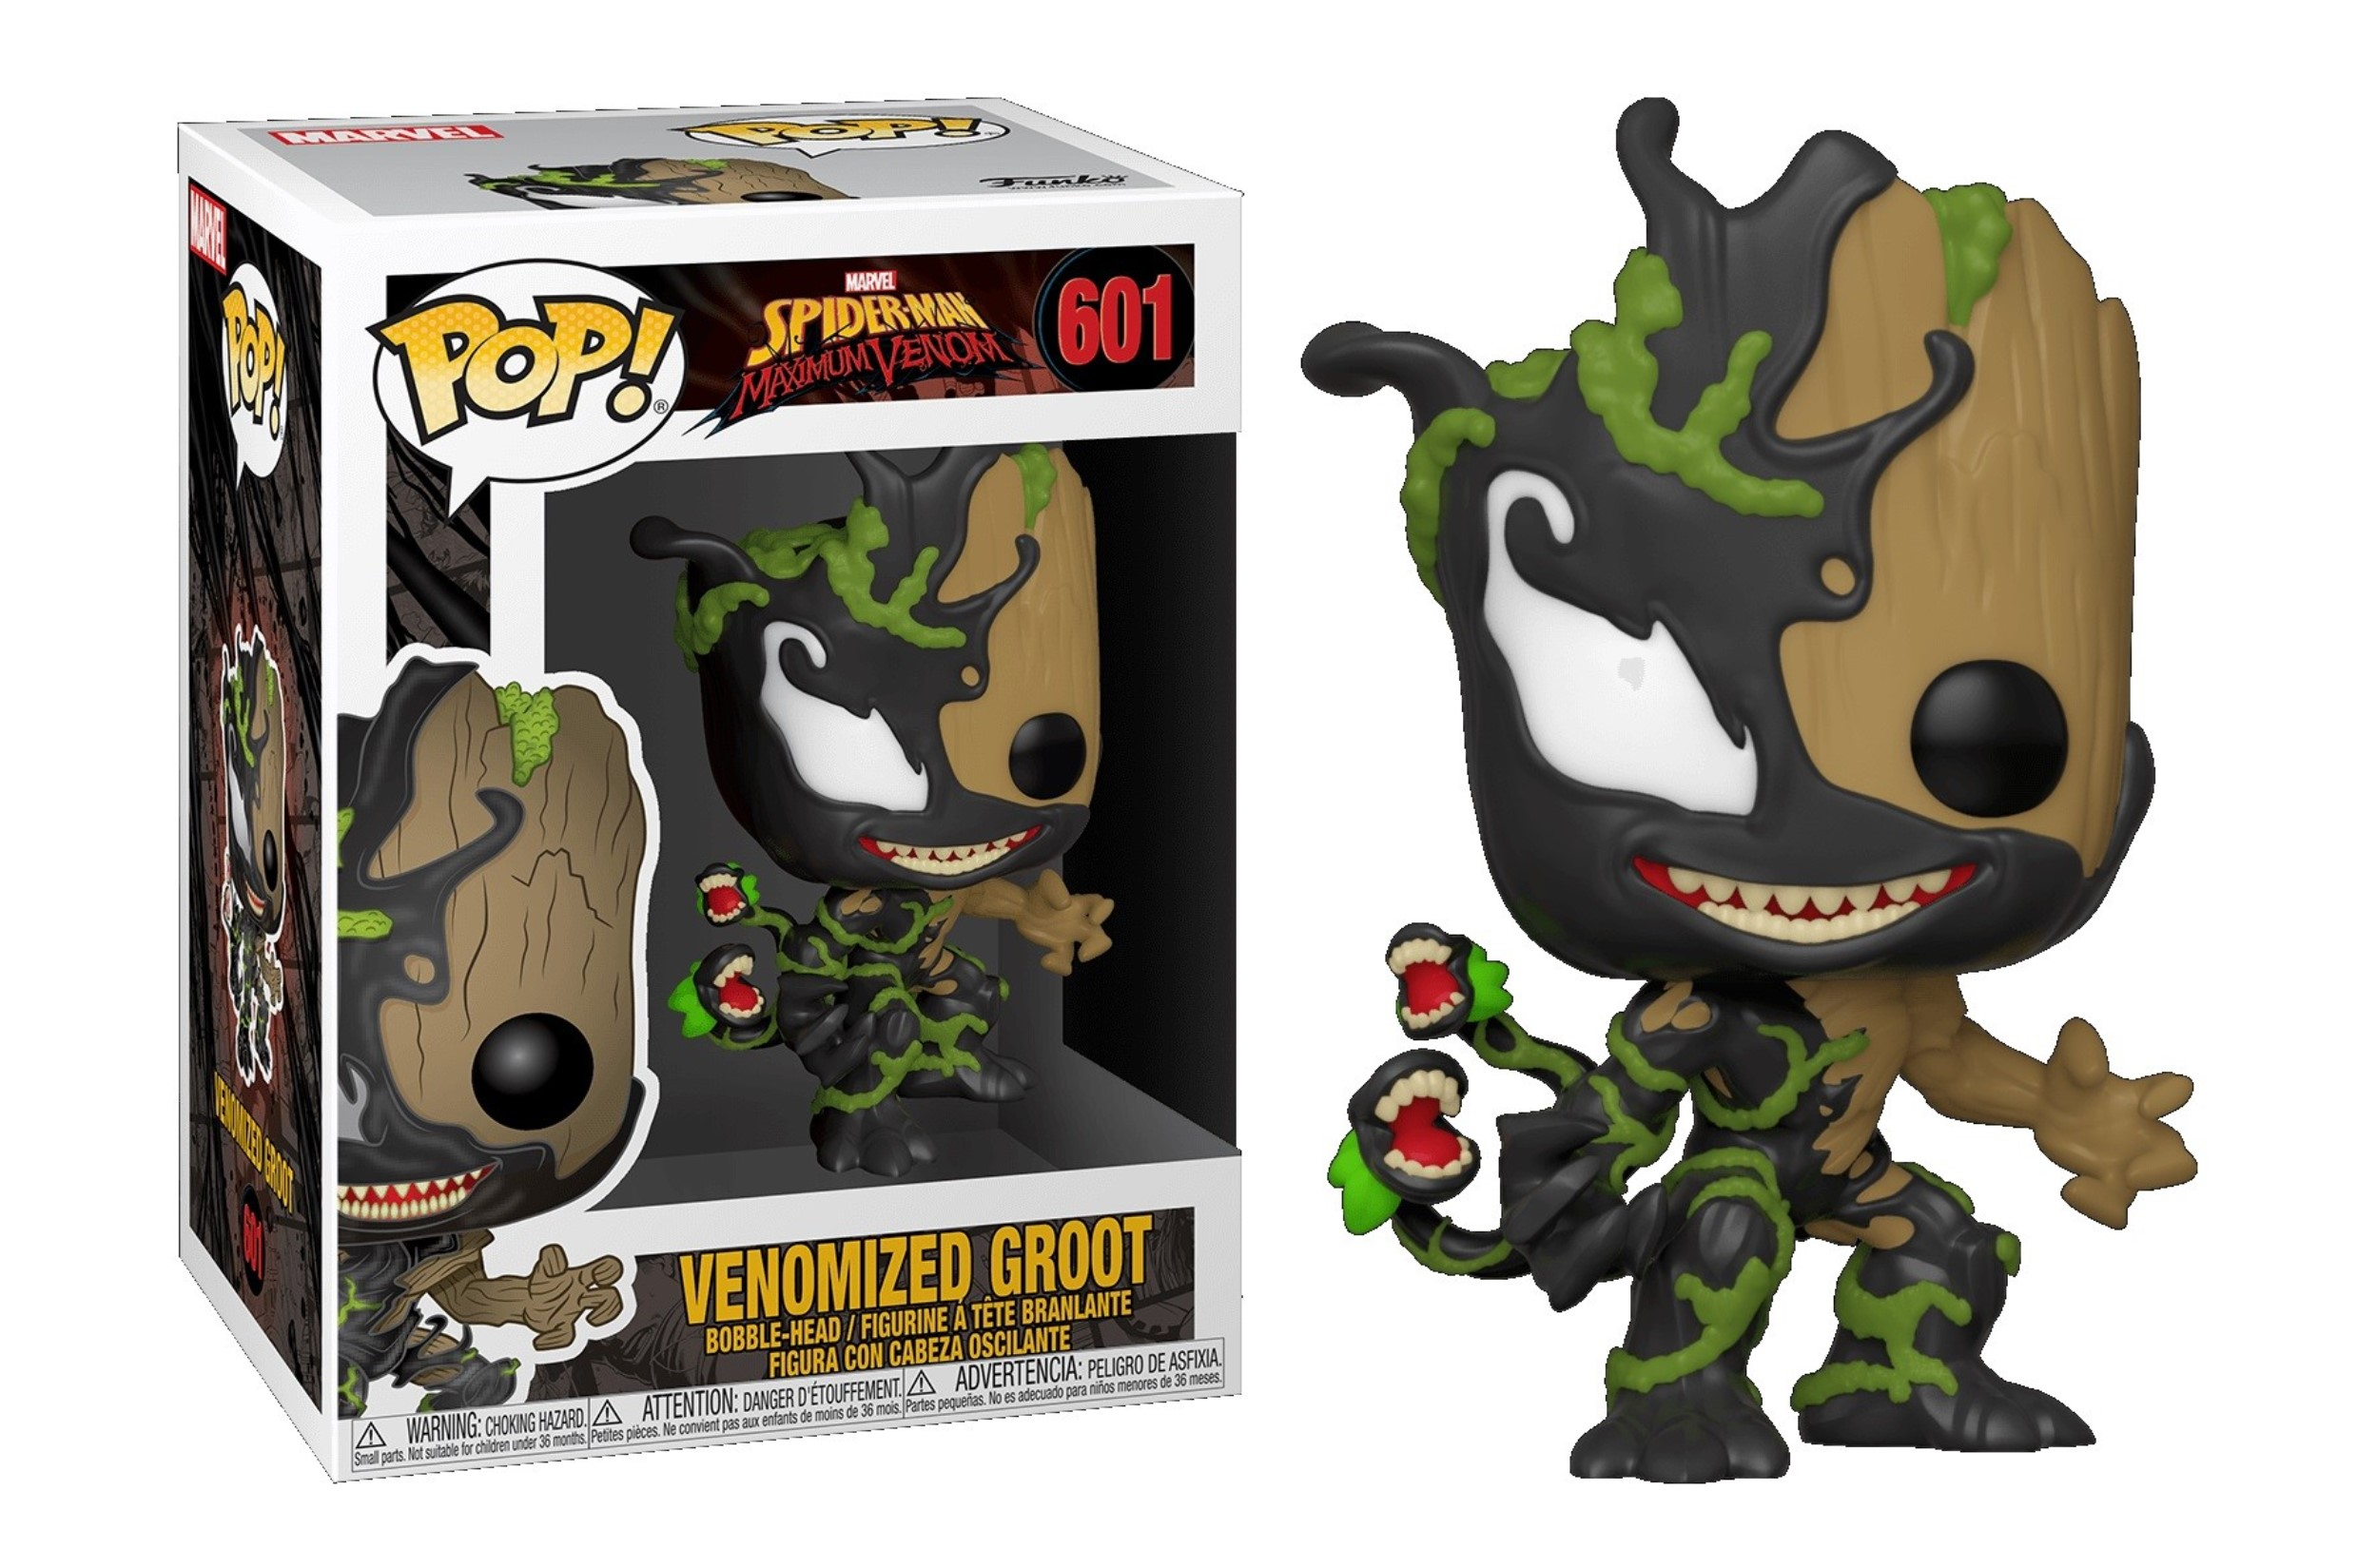 Marvel Venomized Groot 601 Funko POP Vinyl Figure